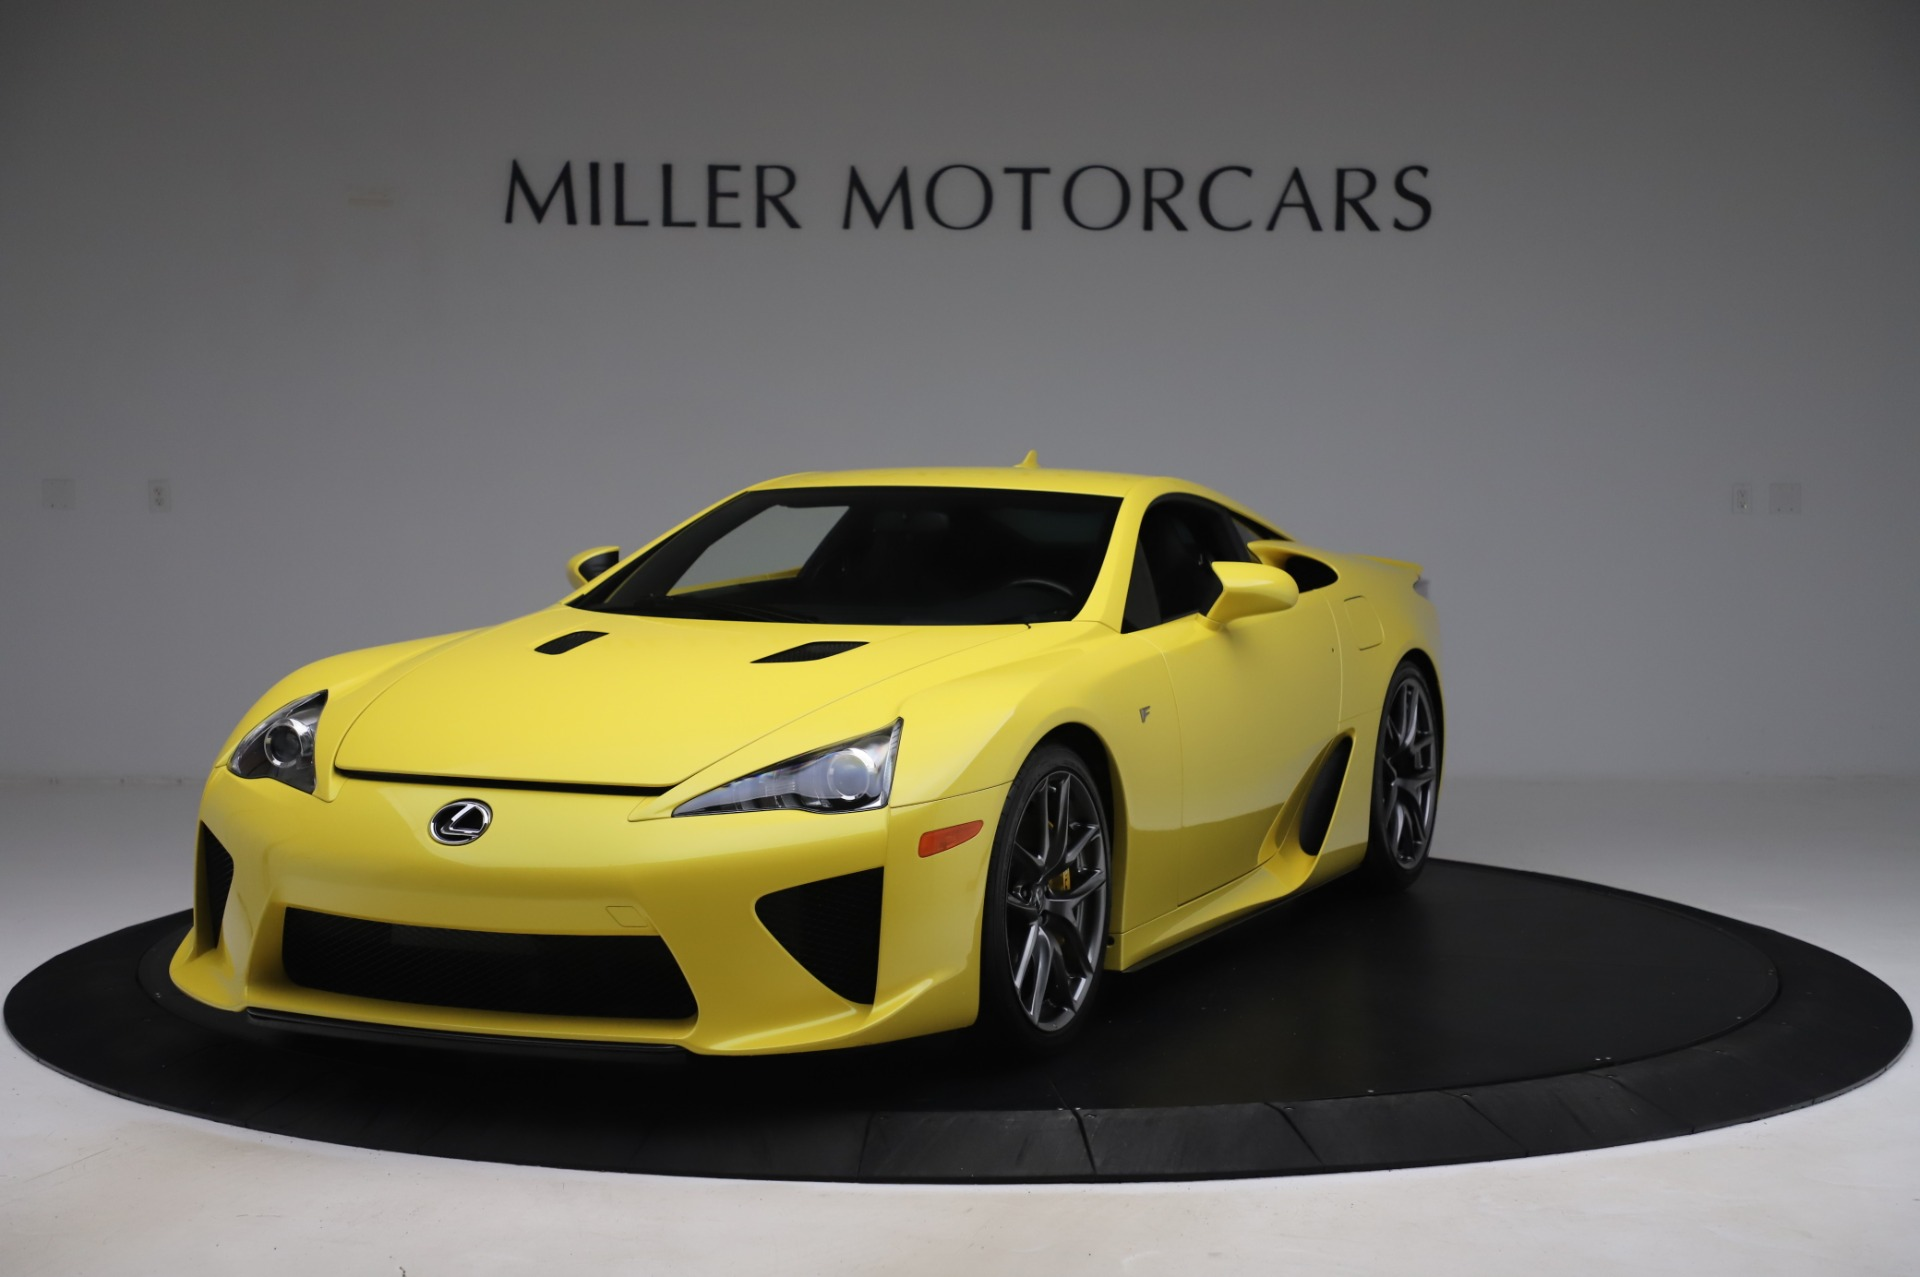 Used 2012 Lexus LFA for sale $509,900 at Maserati of Westport in Westport CT 06880 1